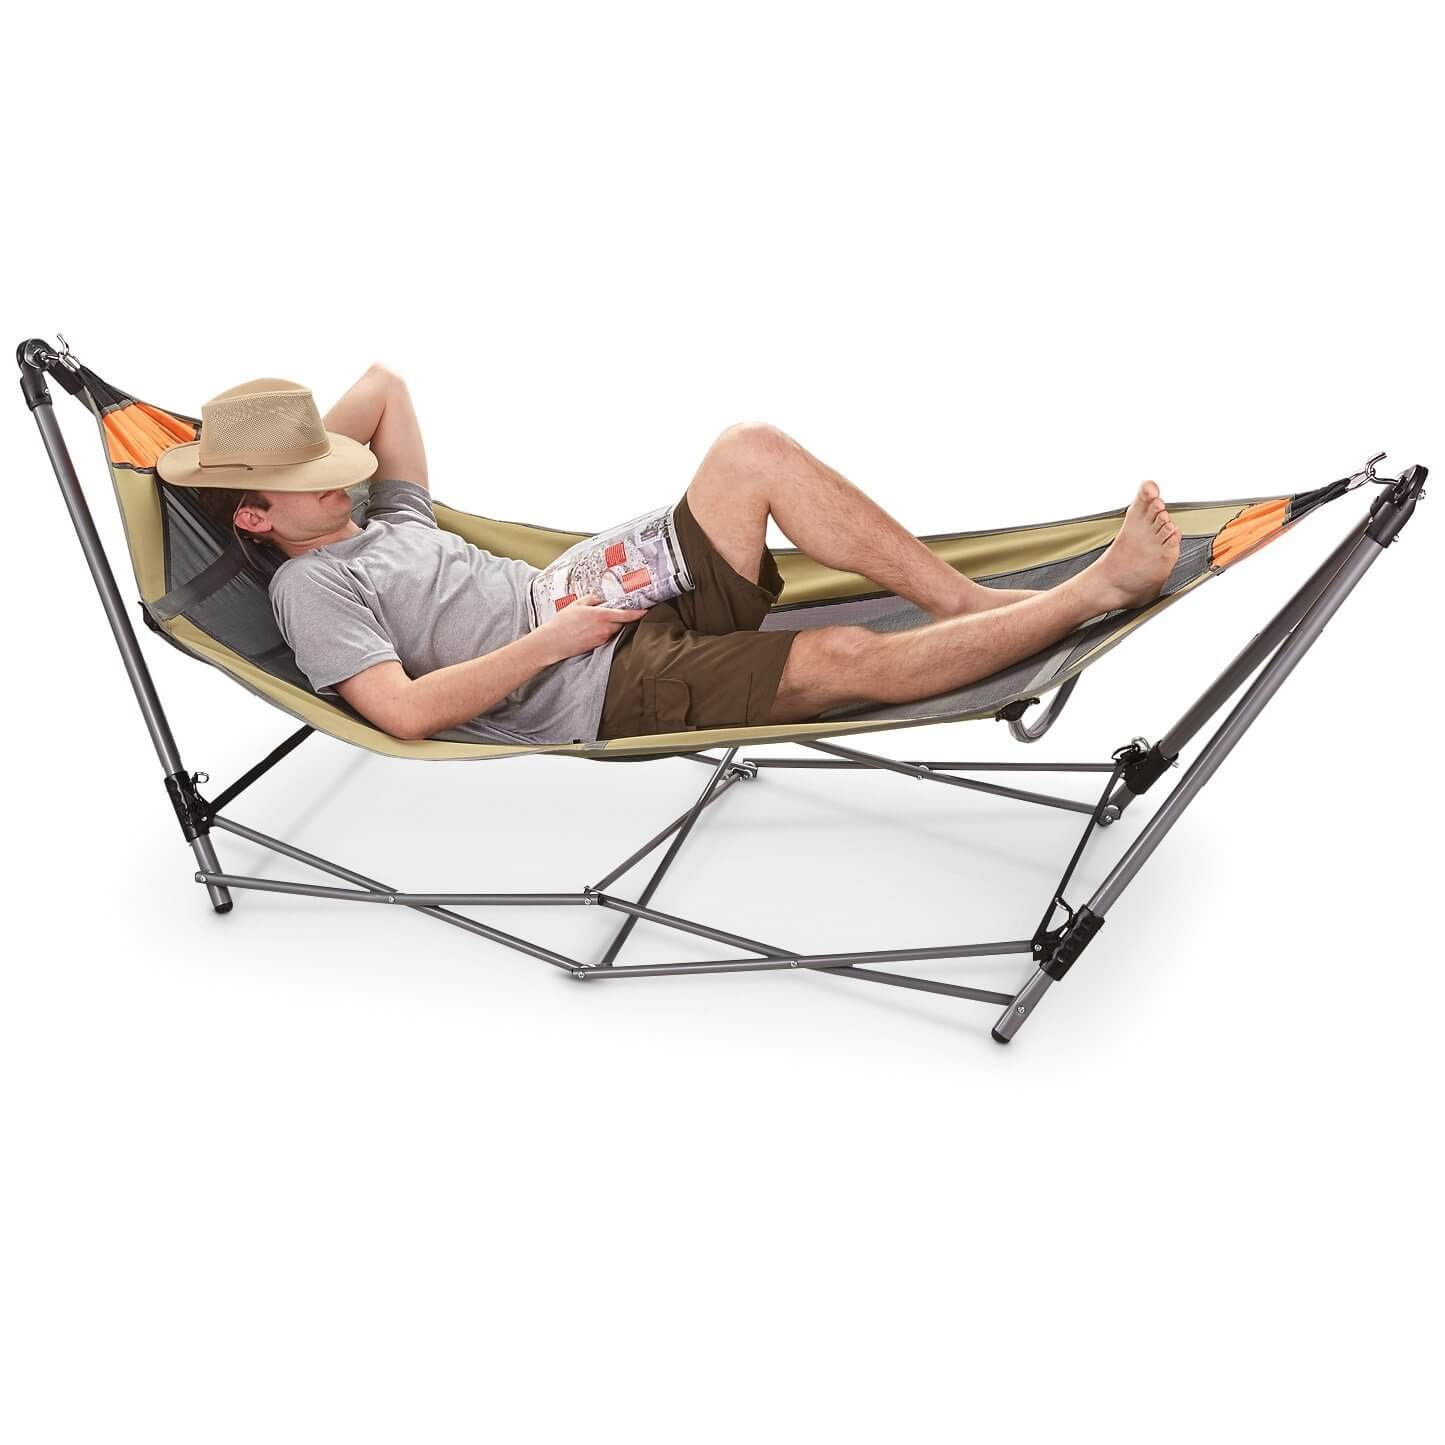 Guide Gear Portable Folding Hammock Review